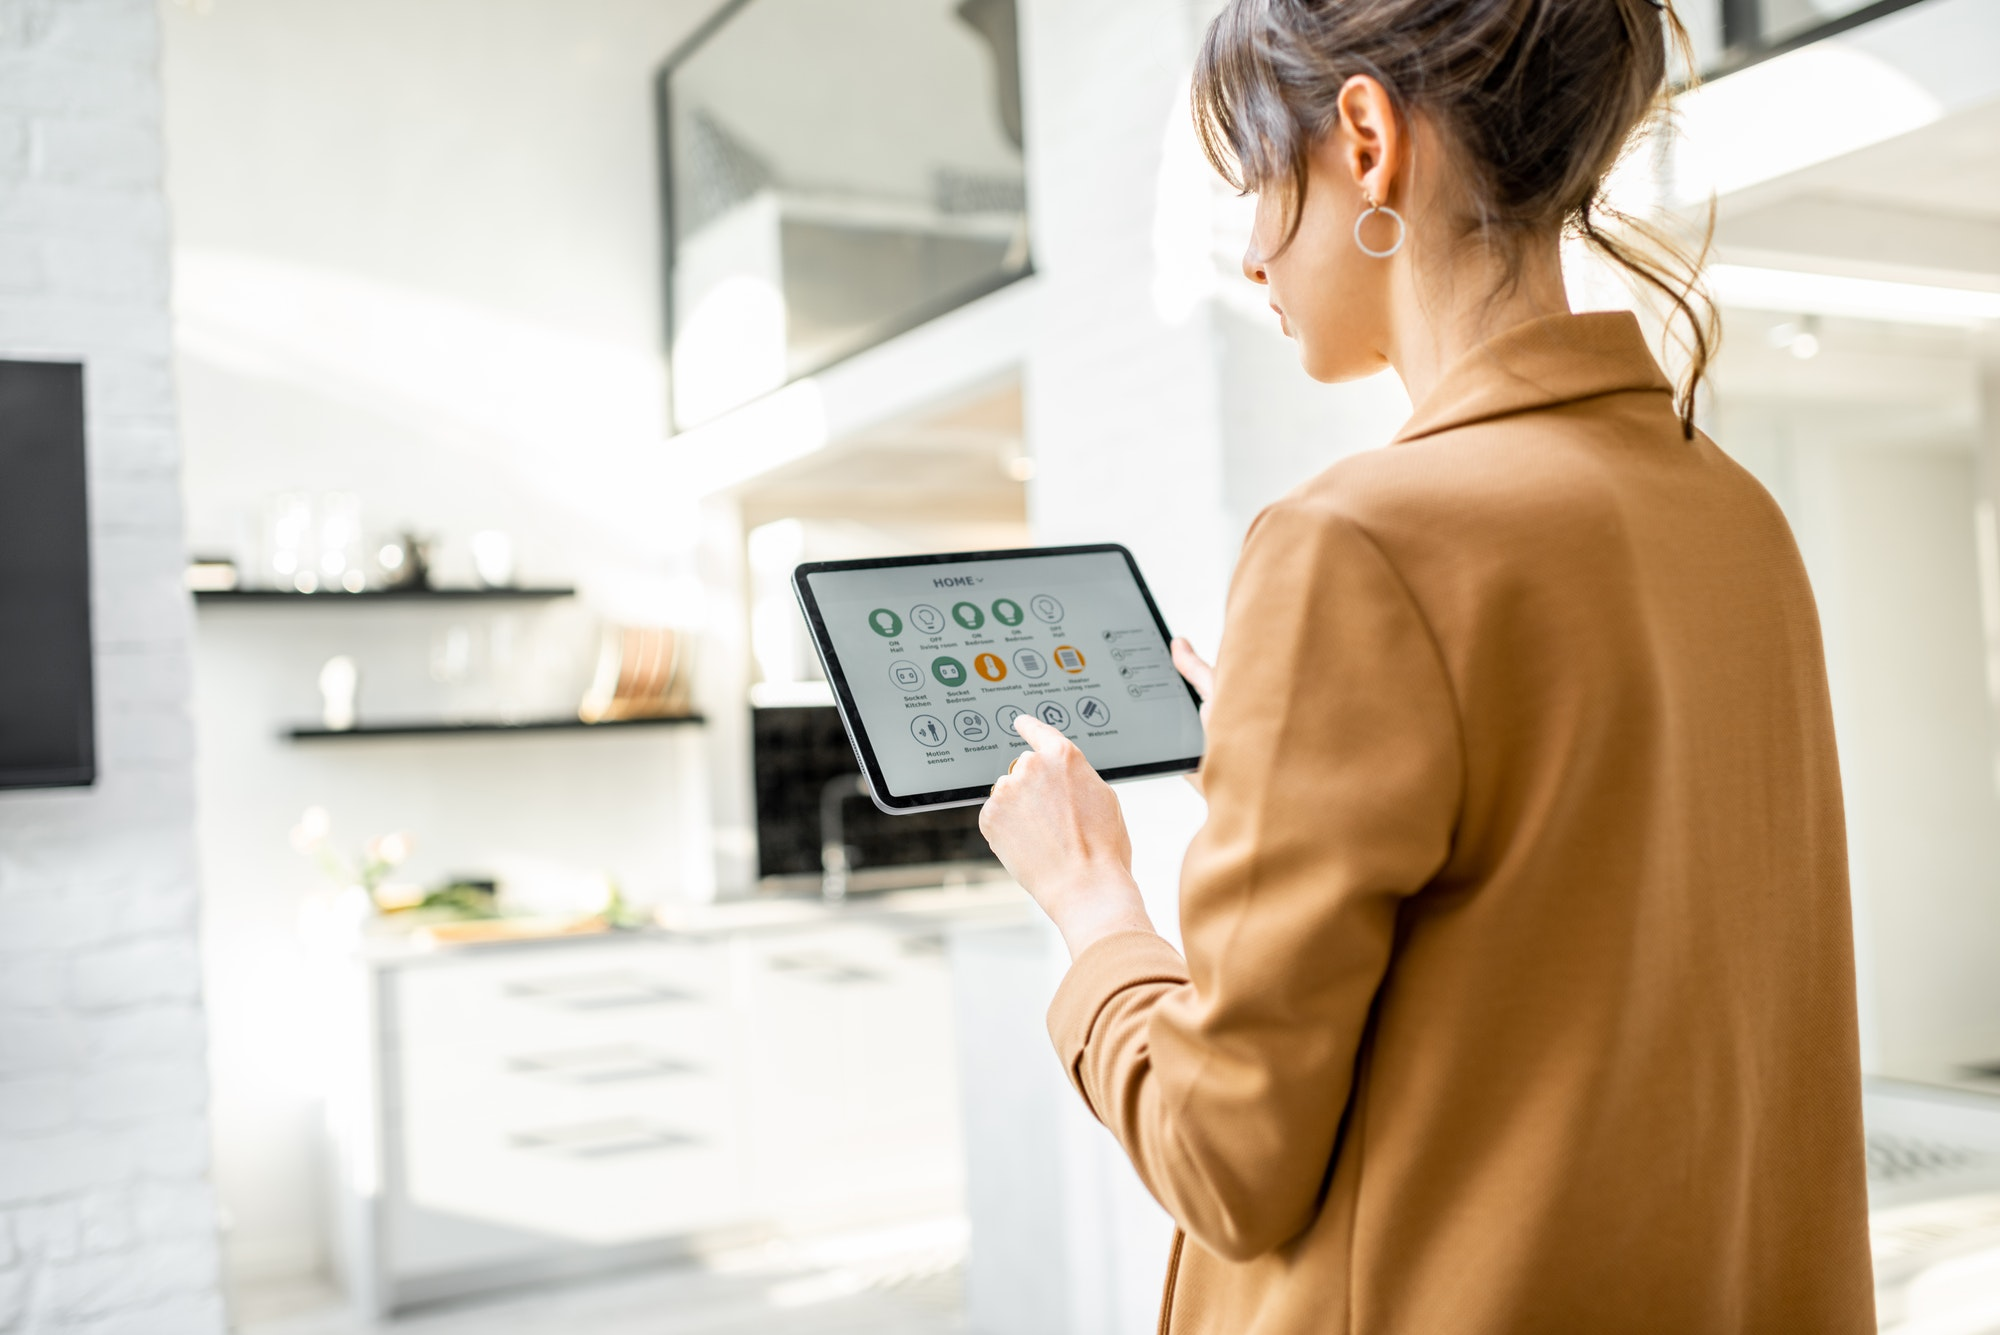 Controlling smart home with a digital tablet